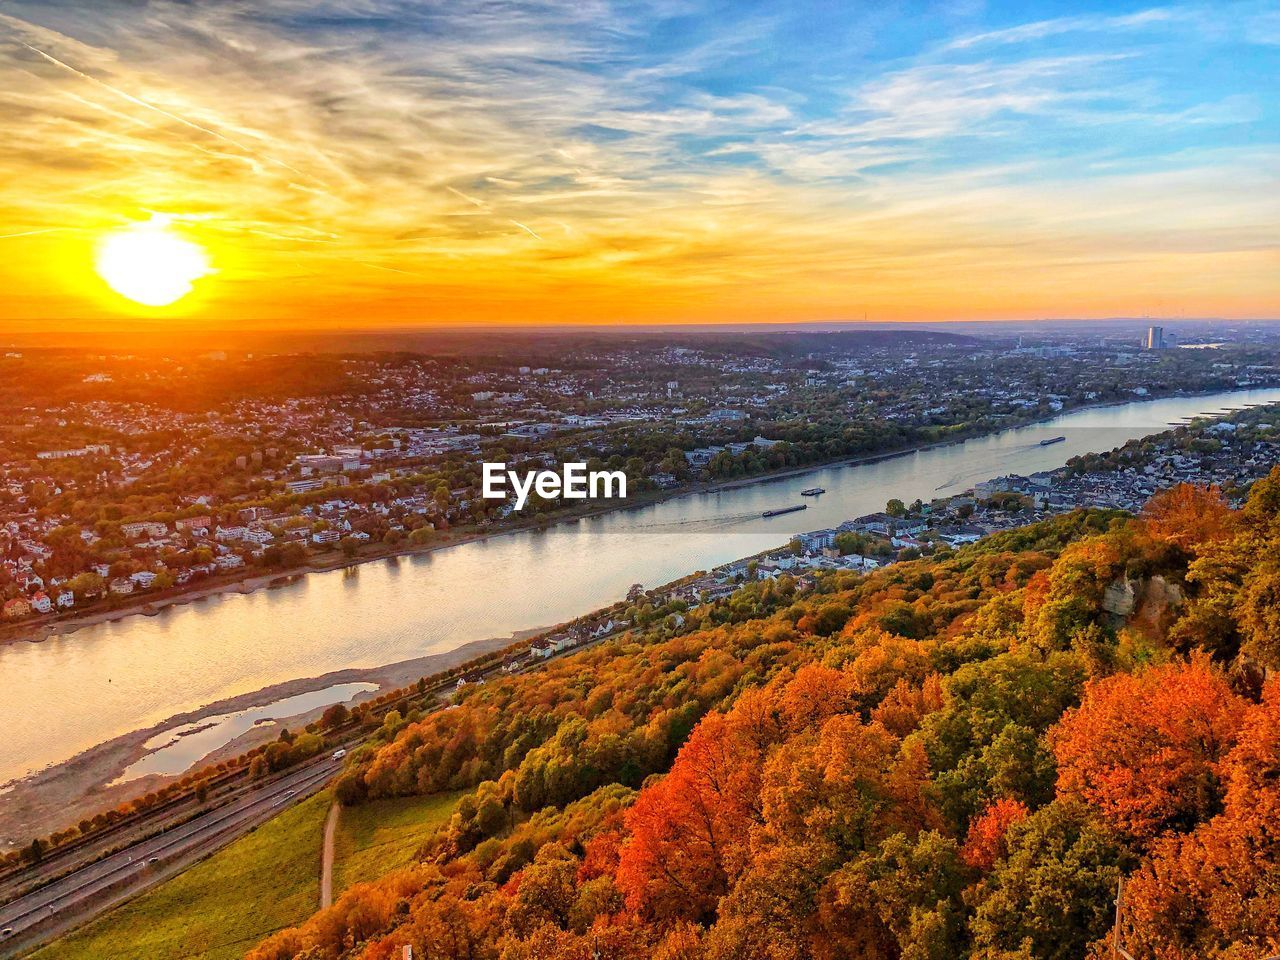 Scenic view of river amidst city during sunset